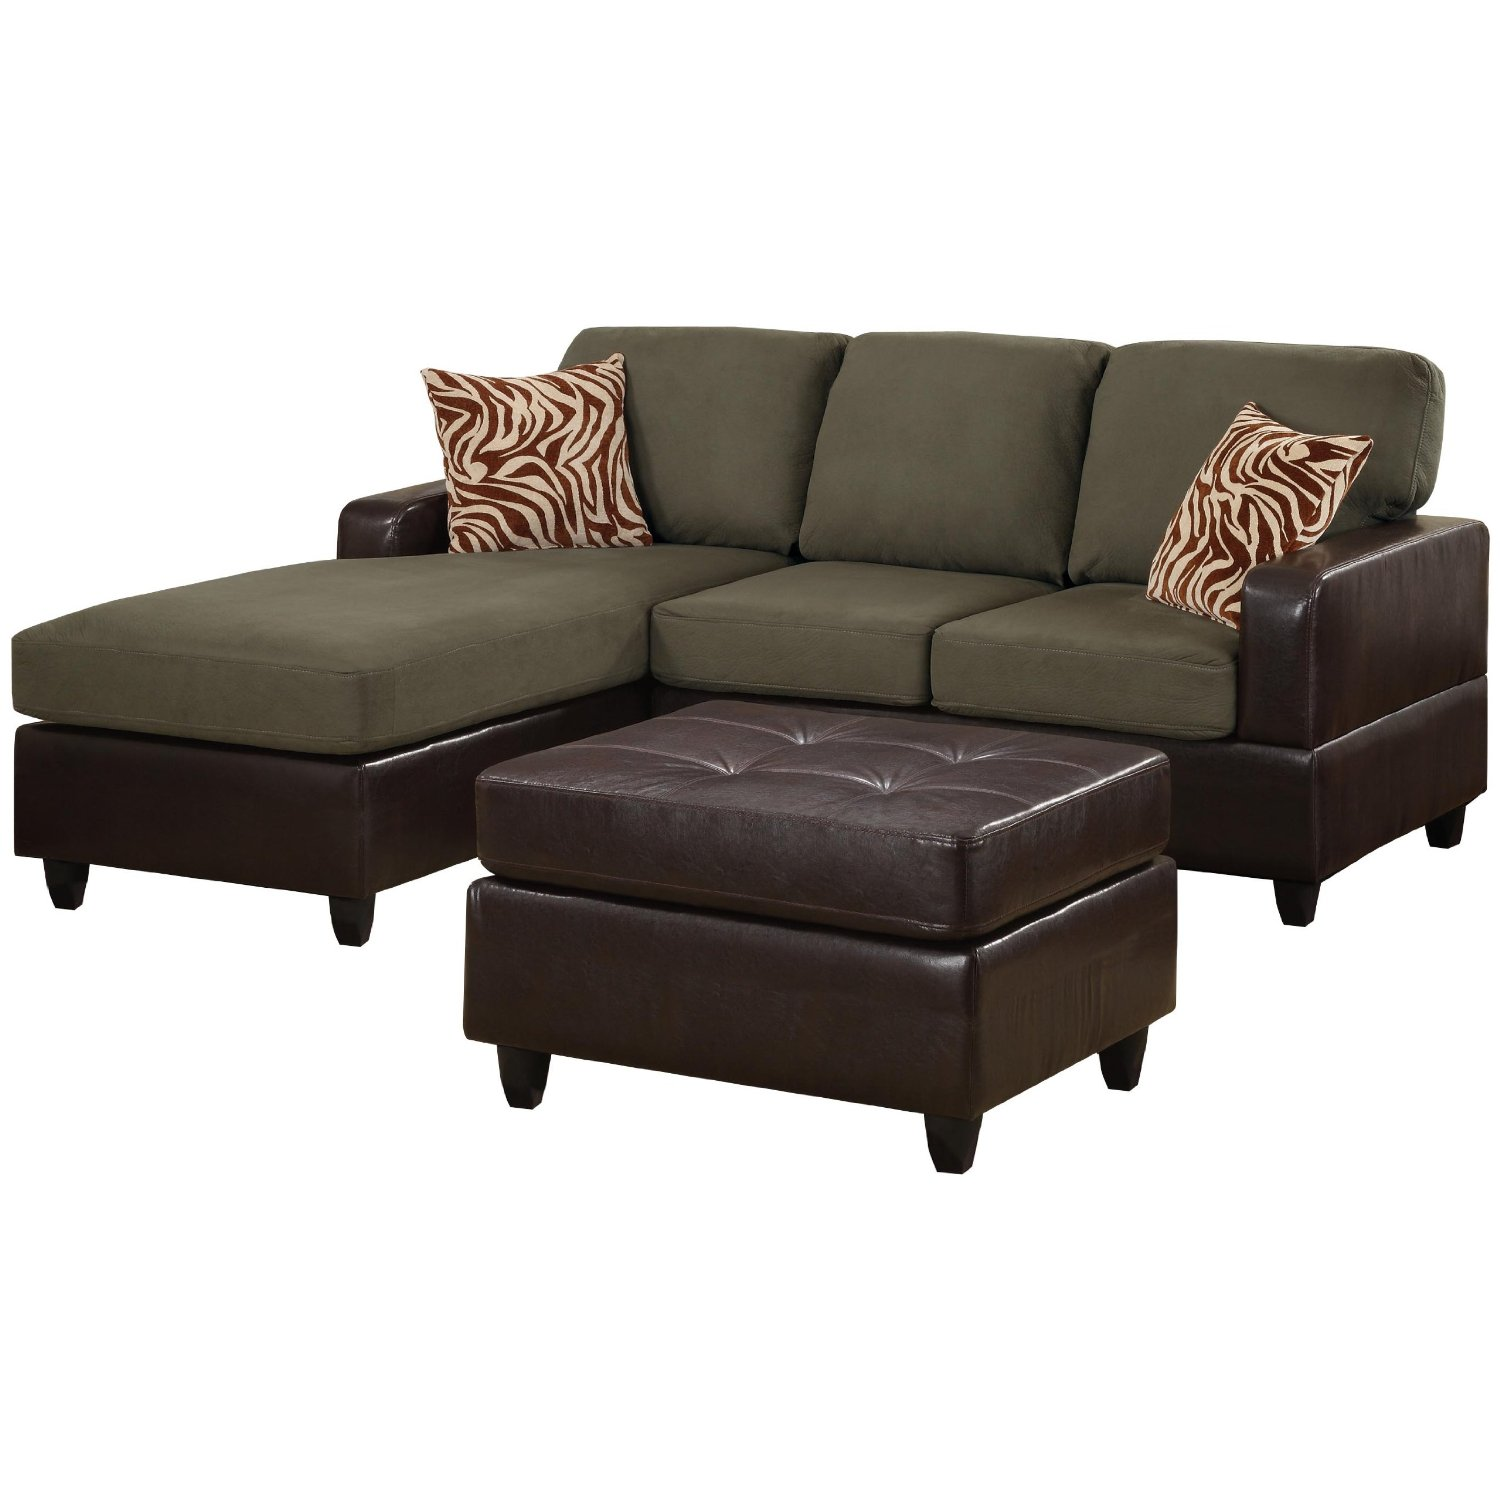 Sectional sofas for small spaces for Small space sectional couch